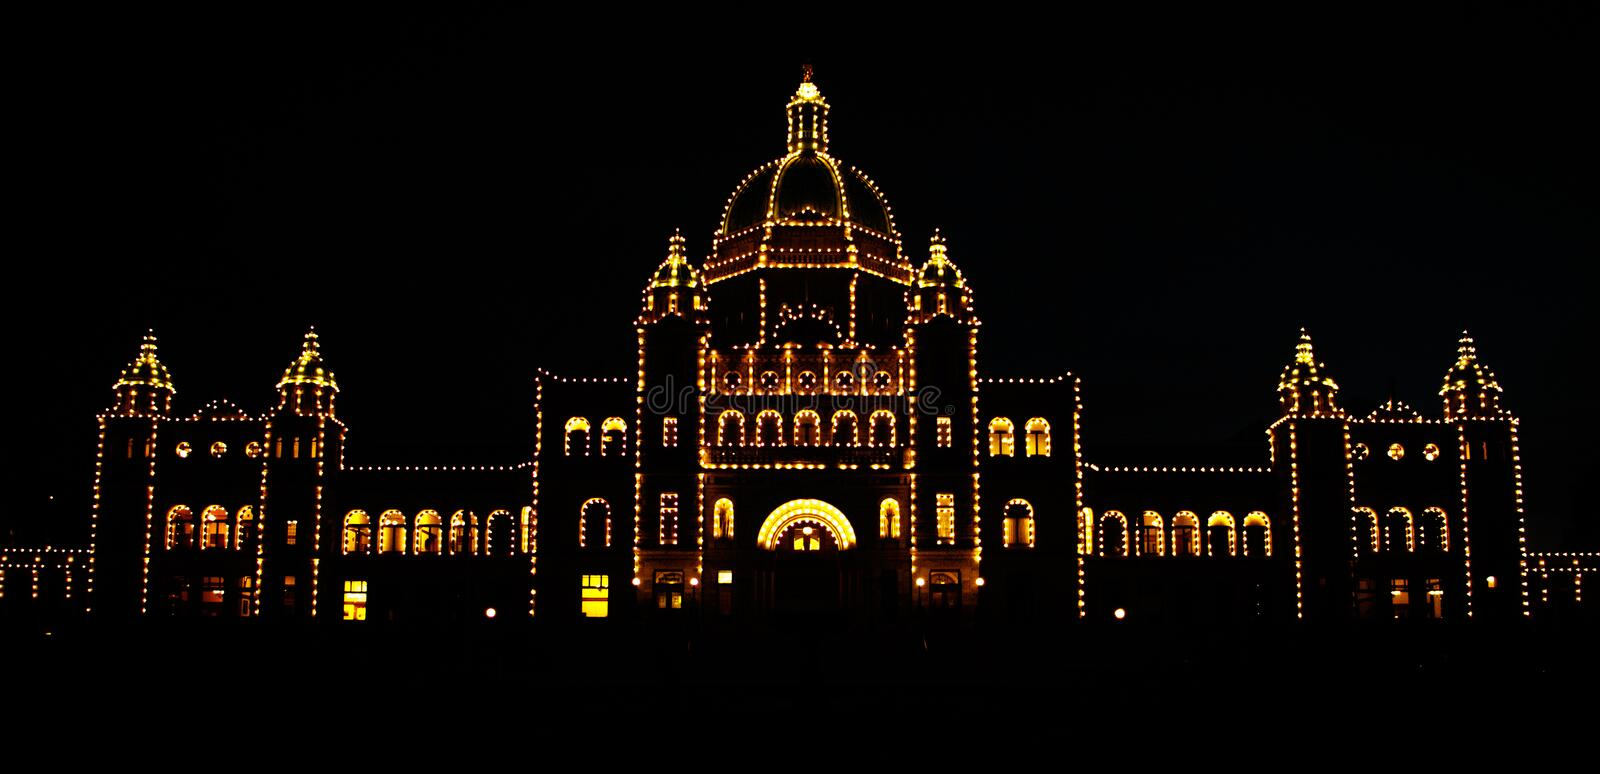 Night scene of parliament palace in Victoria, Vancouver Island, Canada royalty free stock image